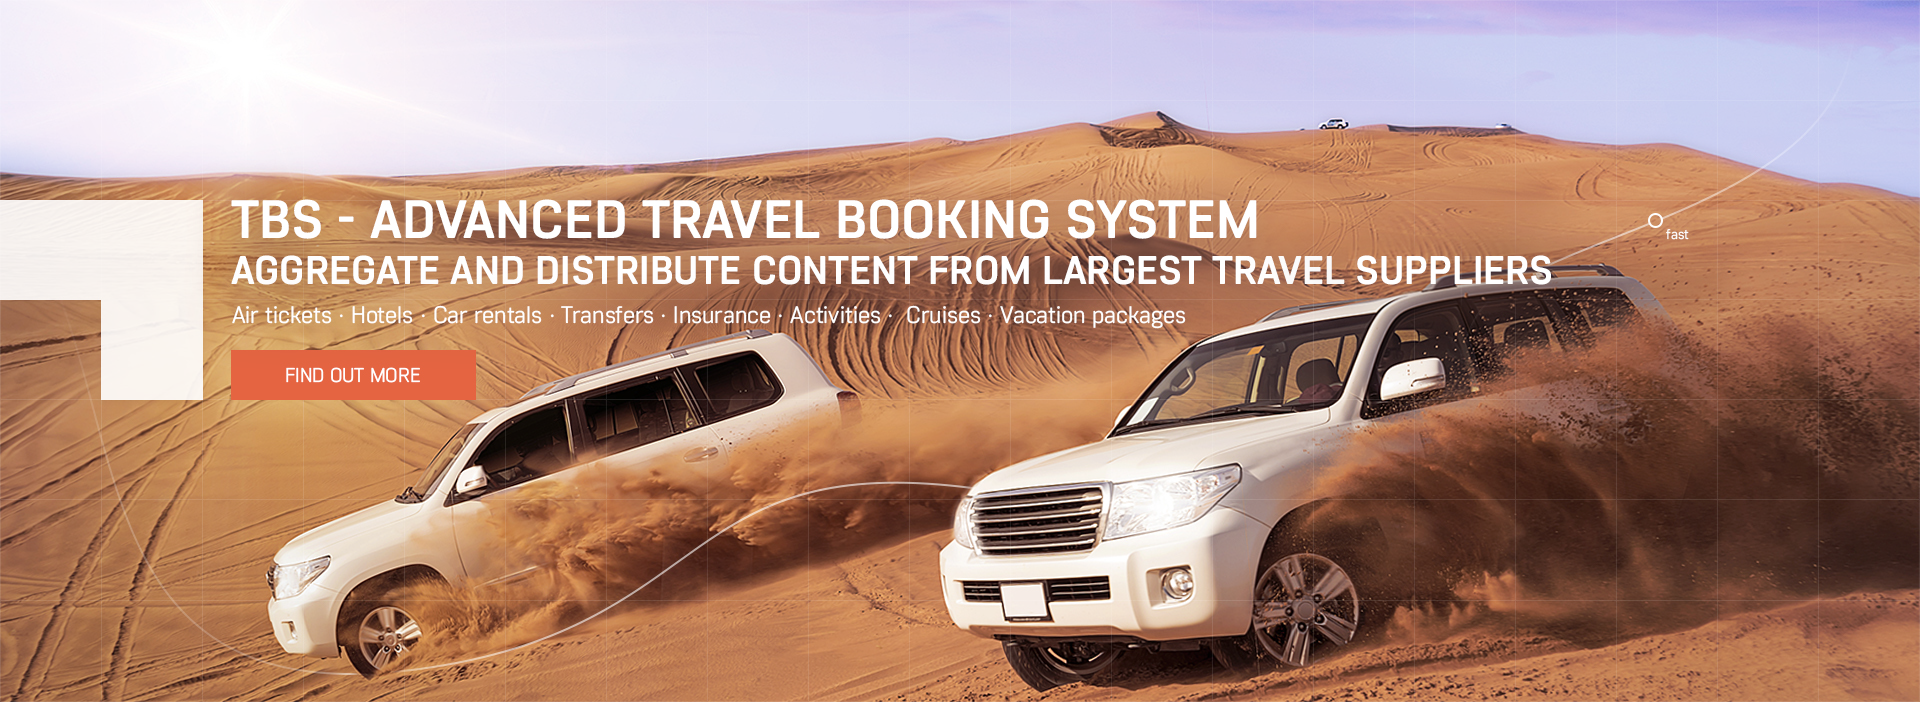 Travel Booking System